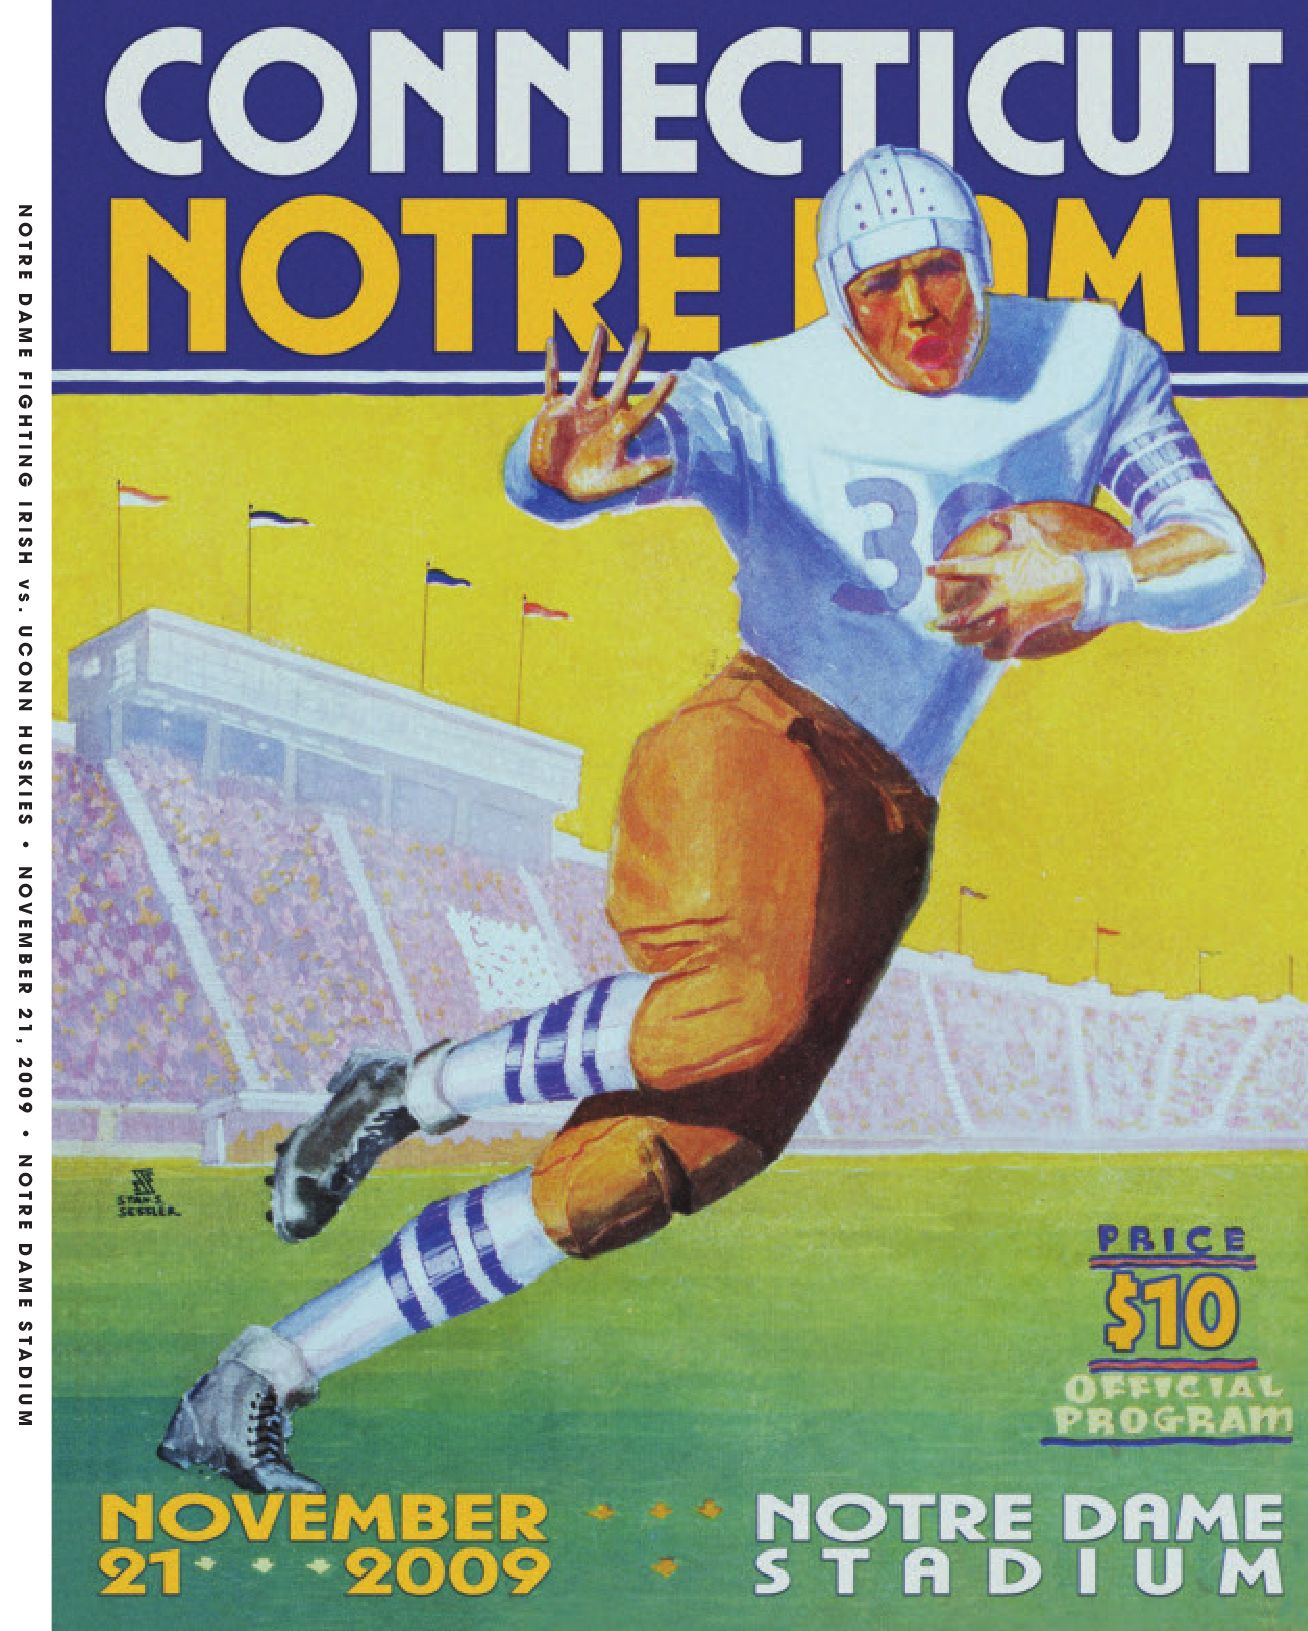 f297e4a40d5815 2009 Notre Dame Football Game Program - Connecticut by Chris Masters - issuu